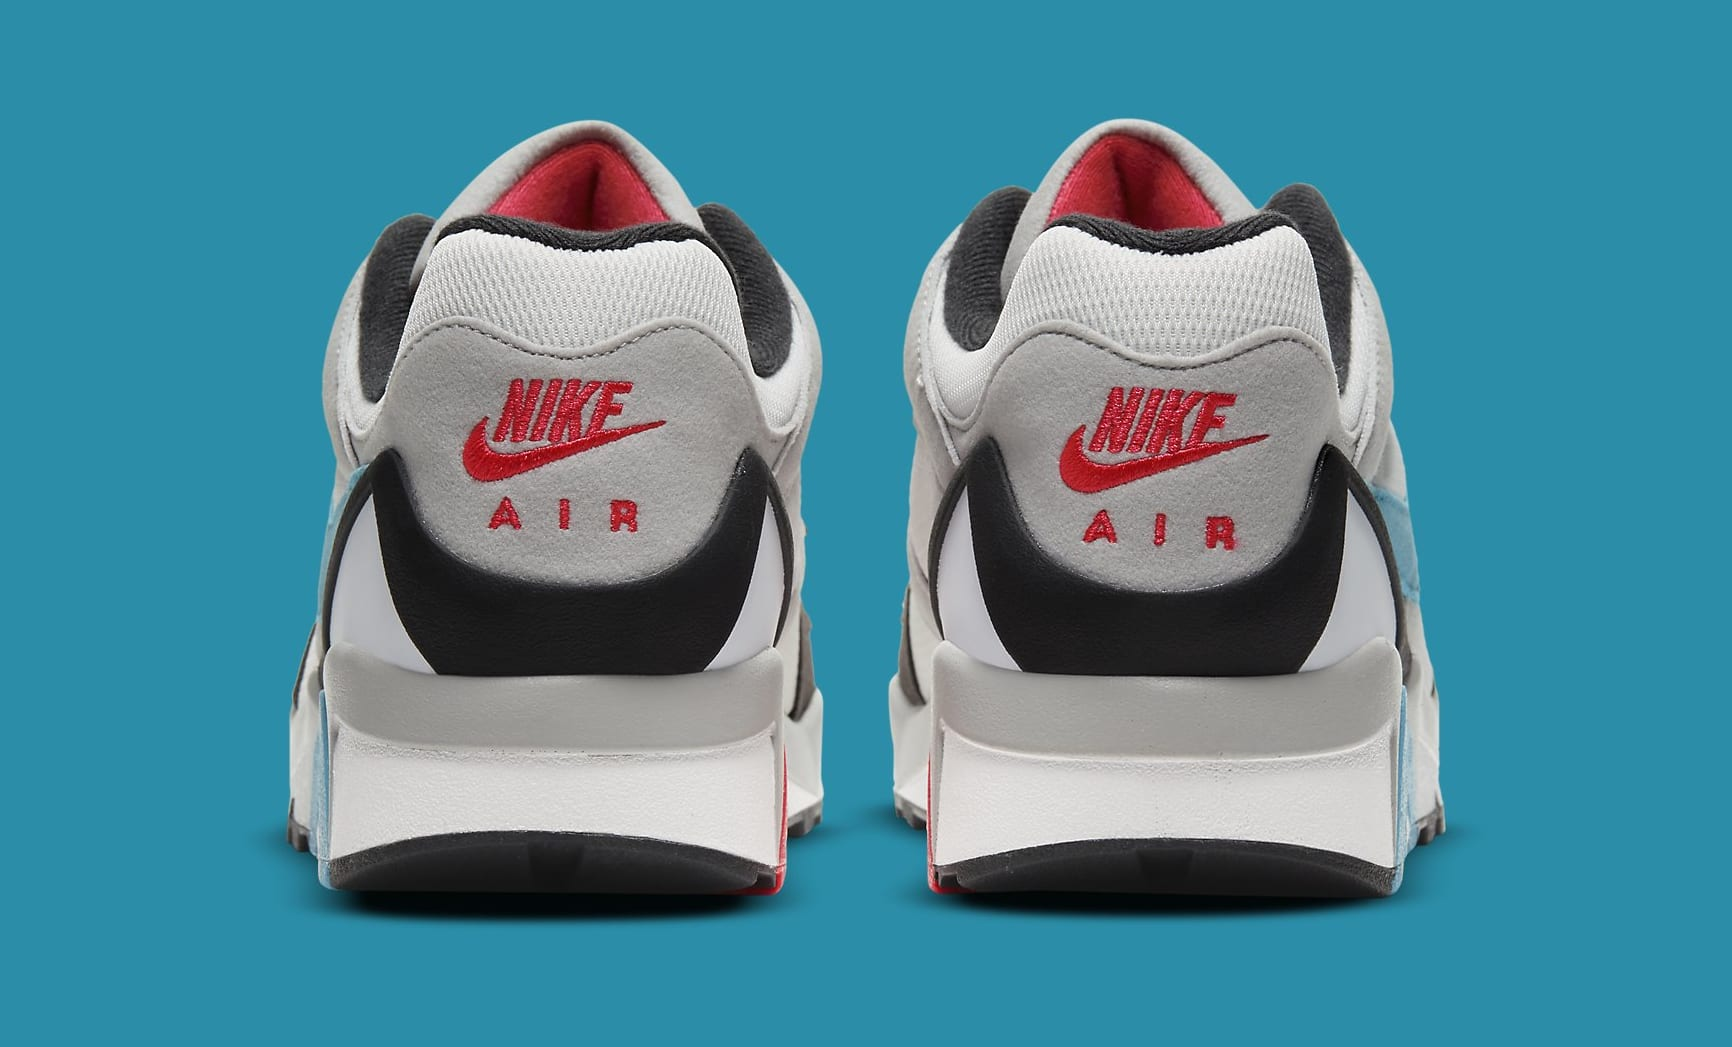 Nike Air Structure Triax 91 'Neo Teal/Infrared' CV3492-100 Heel